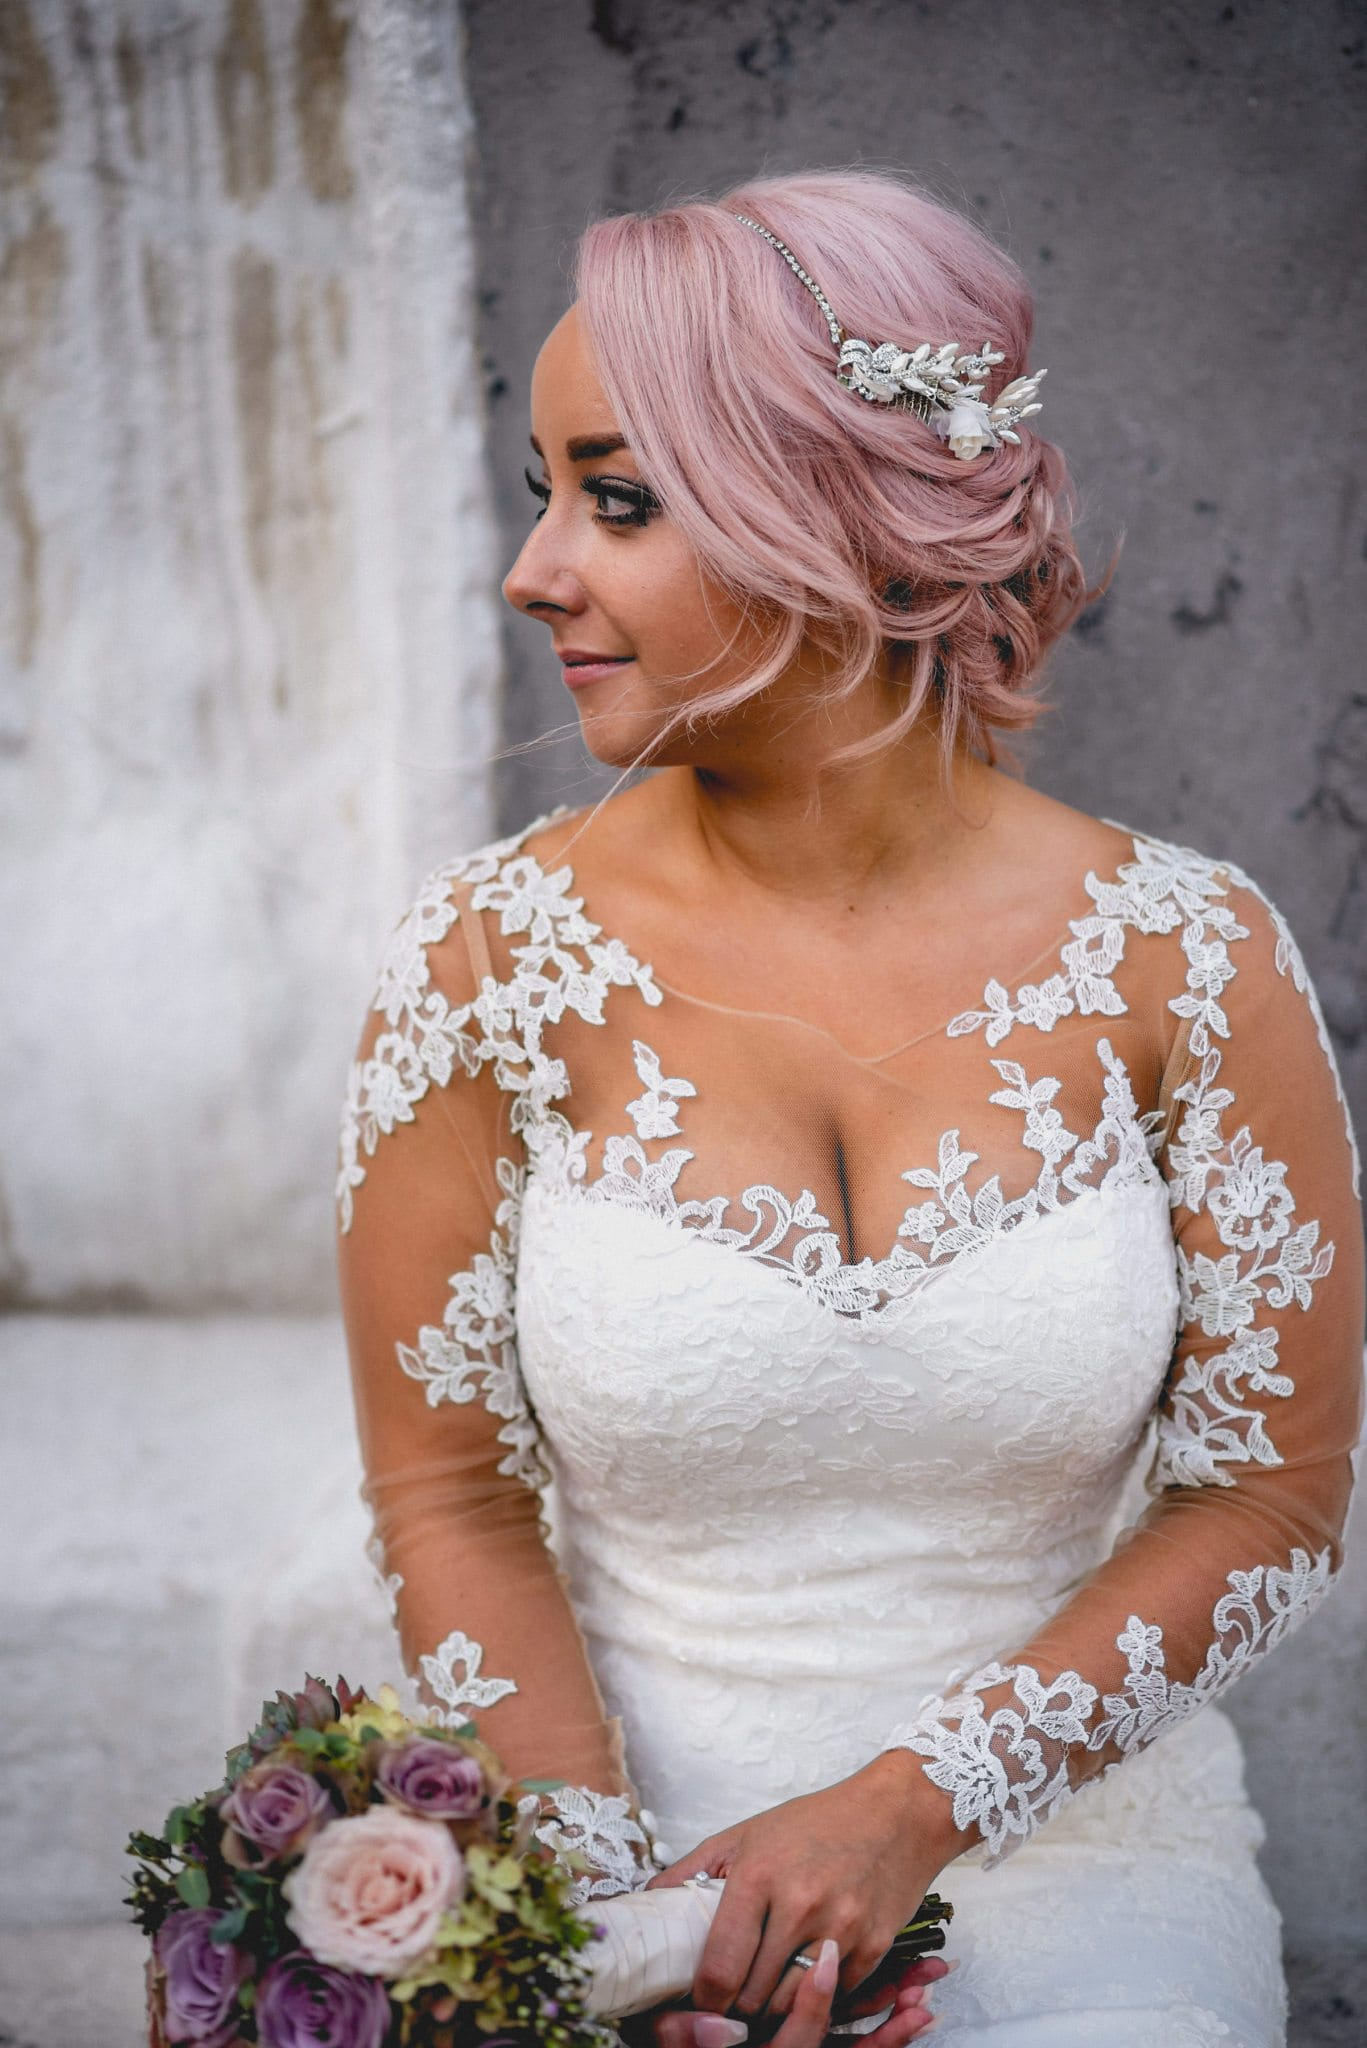 Bridal portrait of bride with pale pink hair and gown with illusion lace sleeves